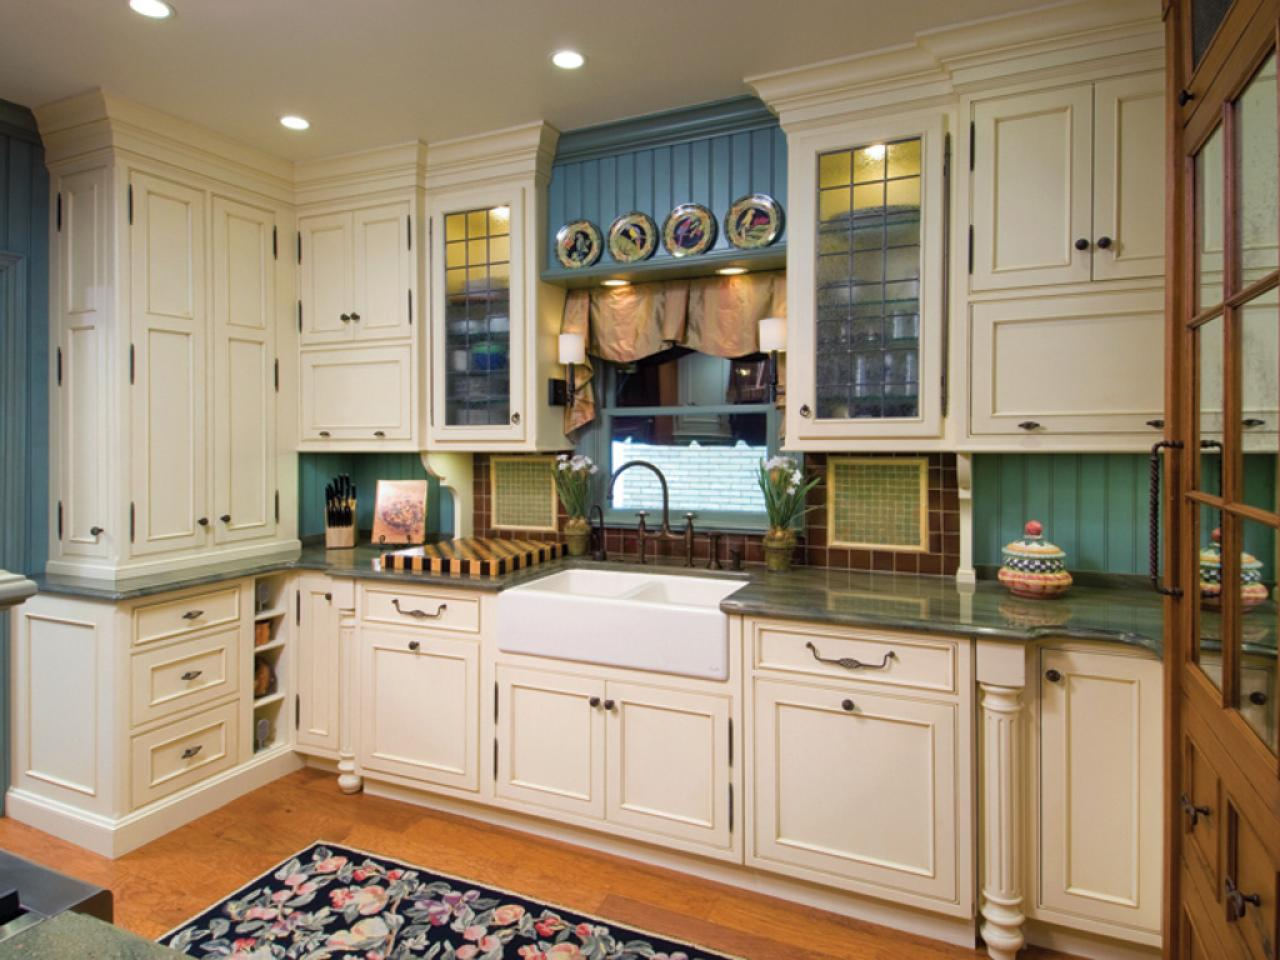 Painting kitchen backsplashes pictures ideas from hgtv Look for design kitchen